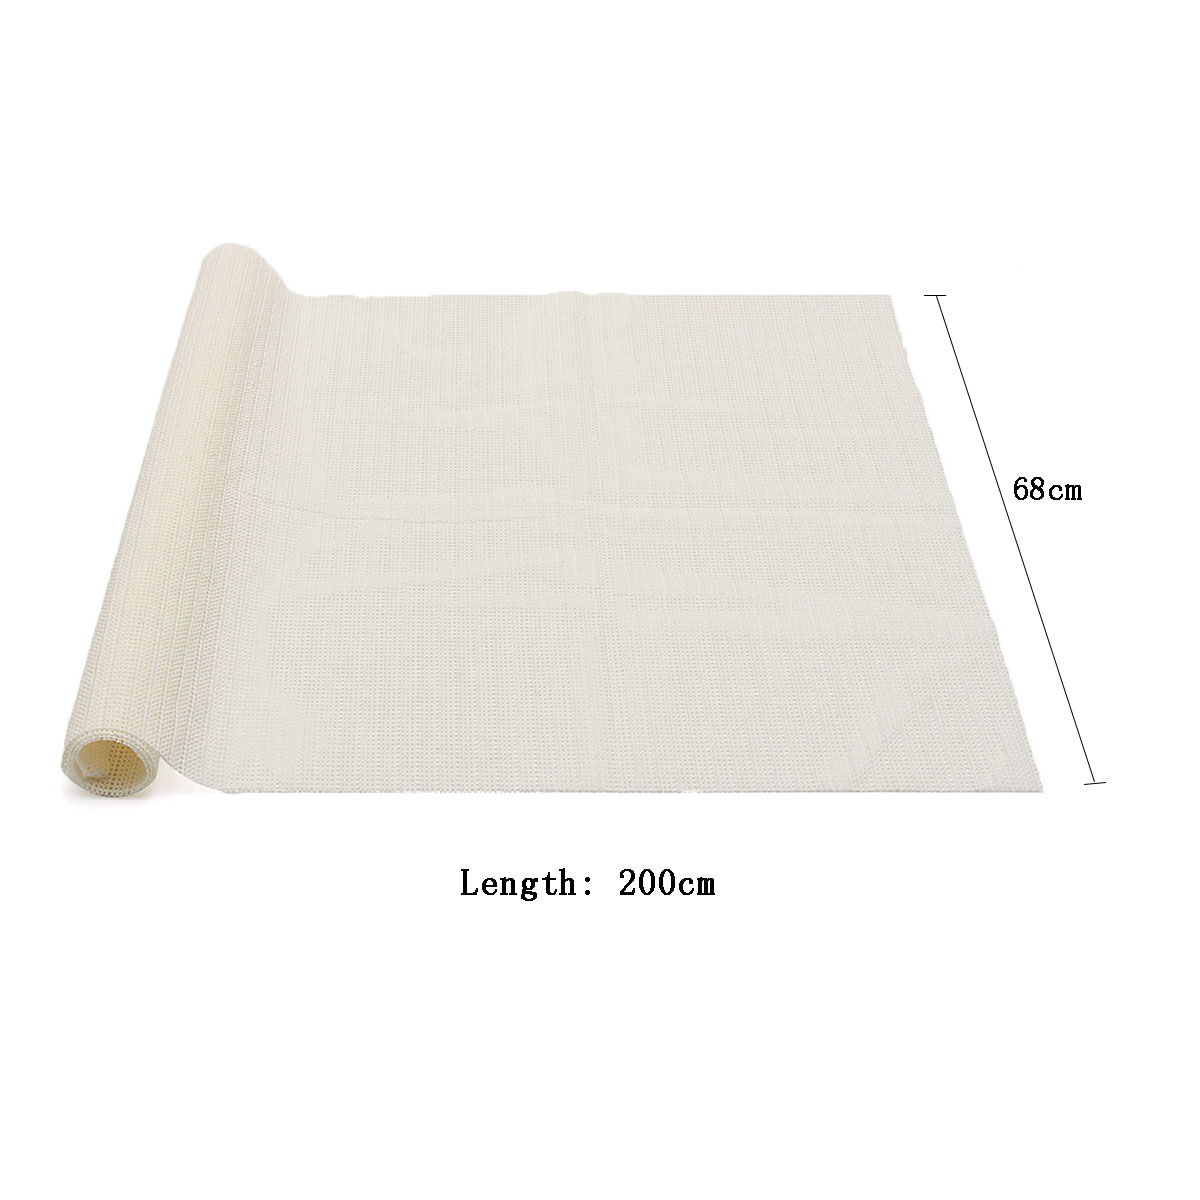 68x200cm Anti Slip Rug Carpet Mat Base Fabric Anti Skid Underlay for Home Room Bath Runner